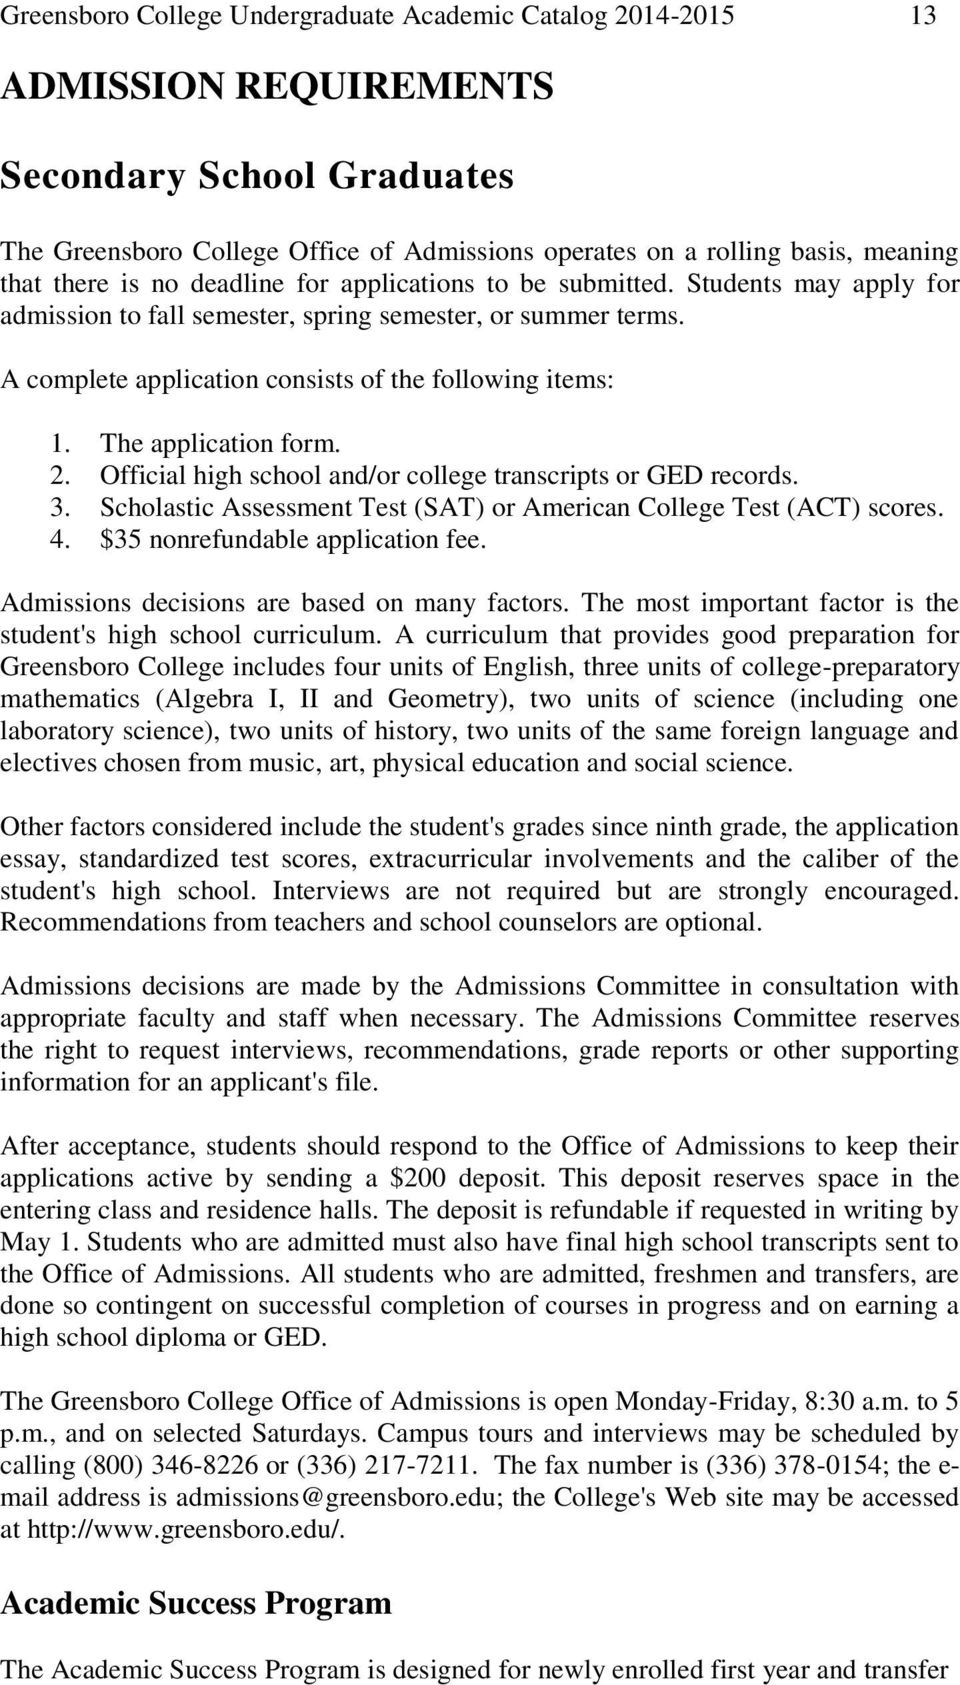 The application form. 2. Official high school and/or college transcripts or GED records. 3. Scholastic Assessment Test (SAT) or American College Test (ACT) scores. 4.